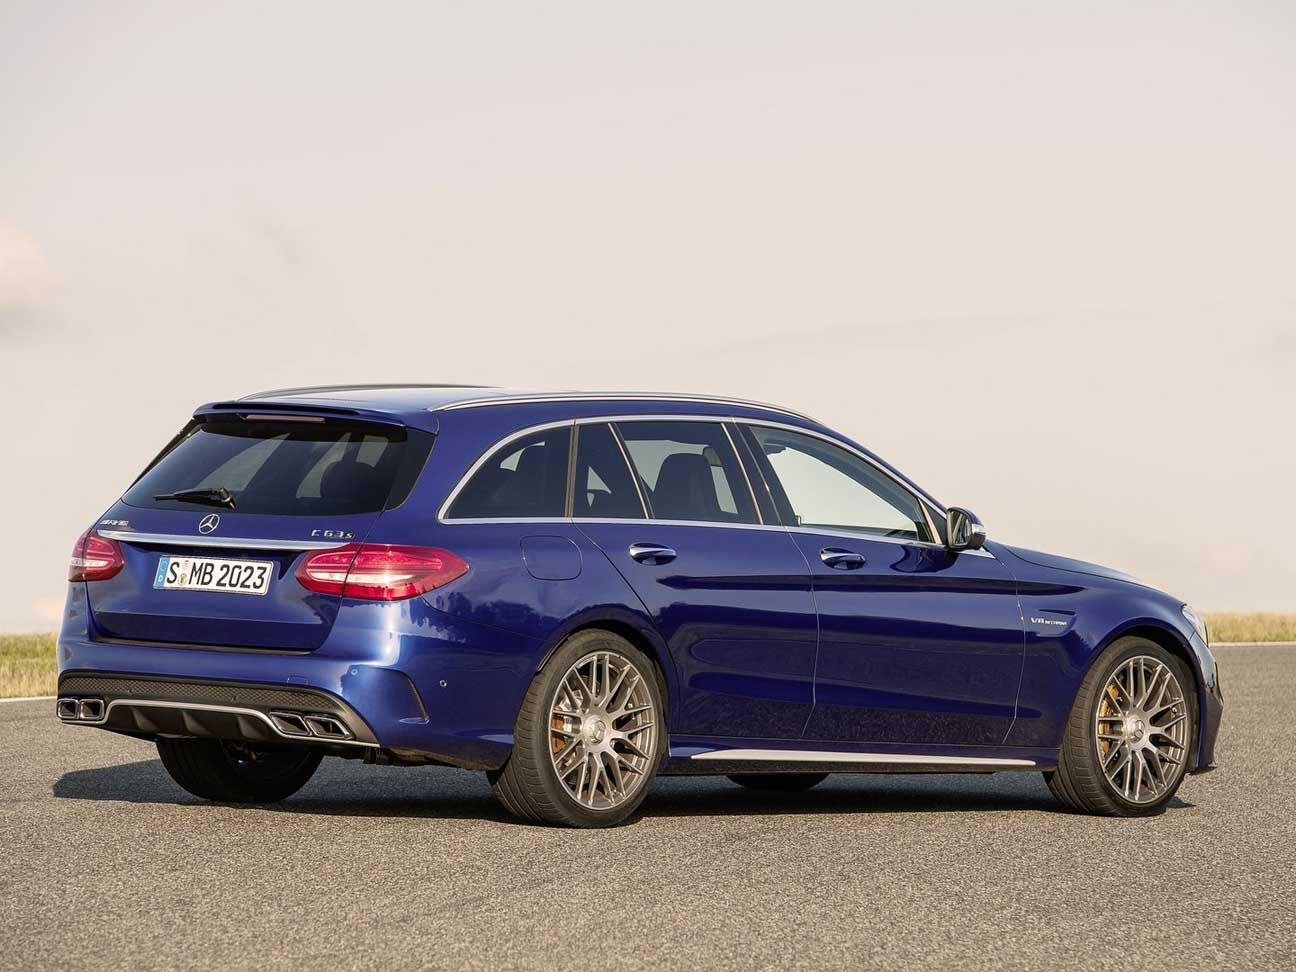 2019 Mercedes Benz C63 AMG Estate photo - 5